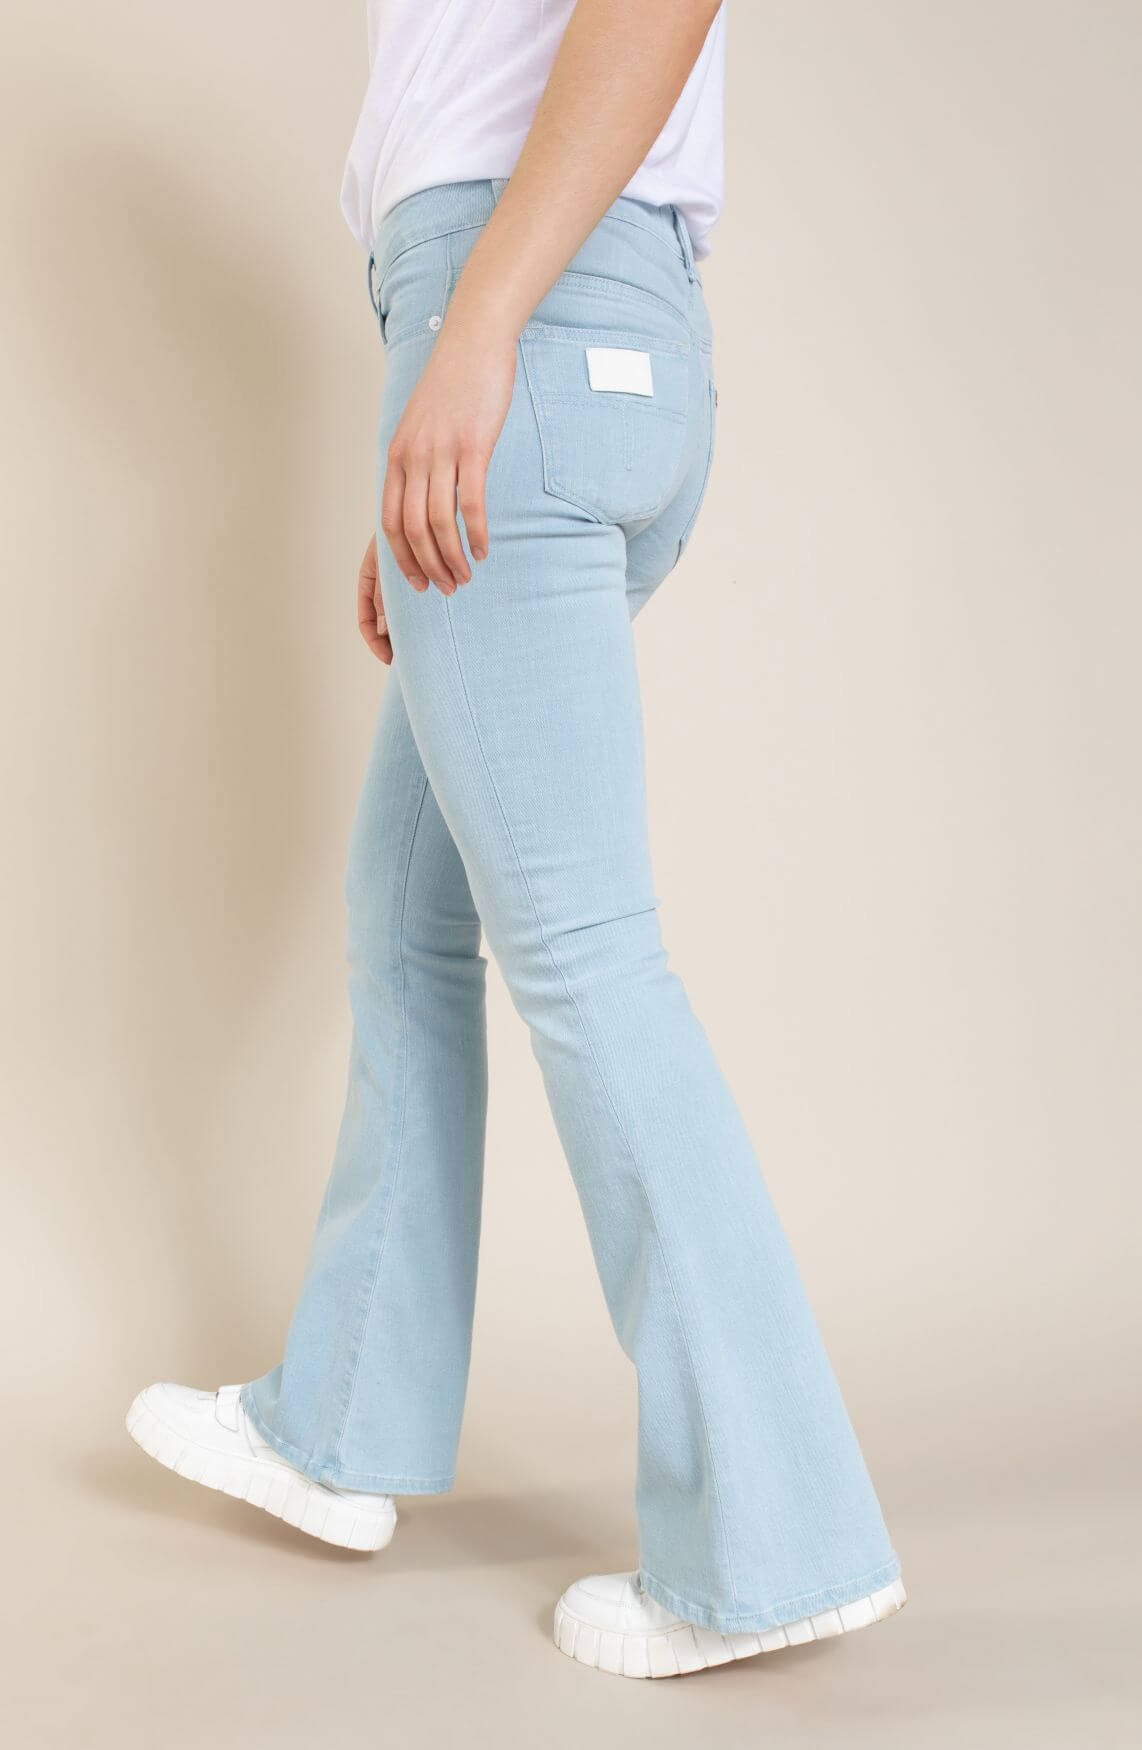 Lois Dames Flared jeans Blauw